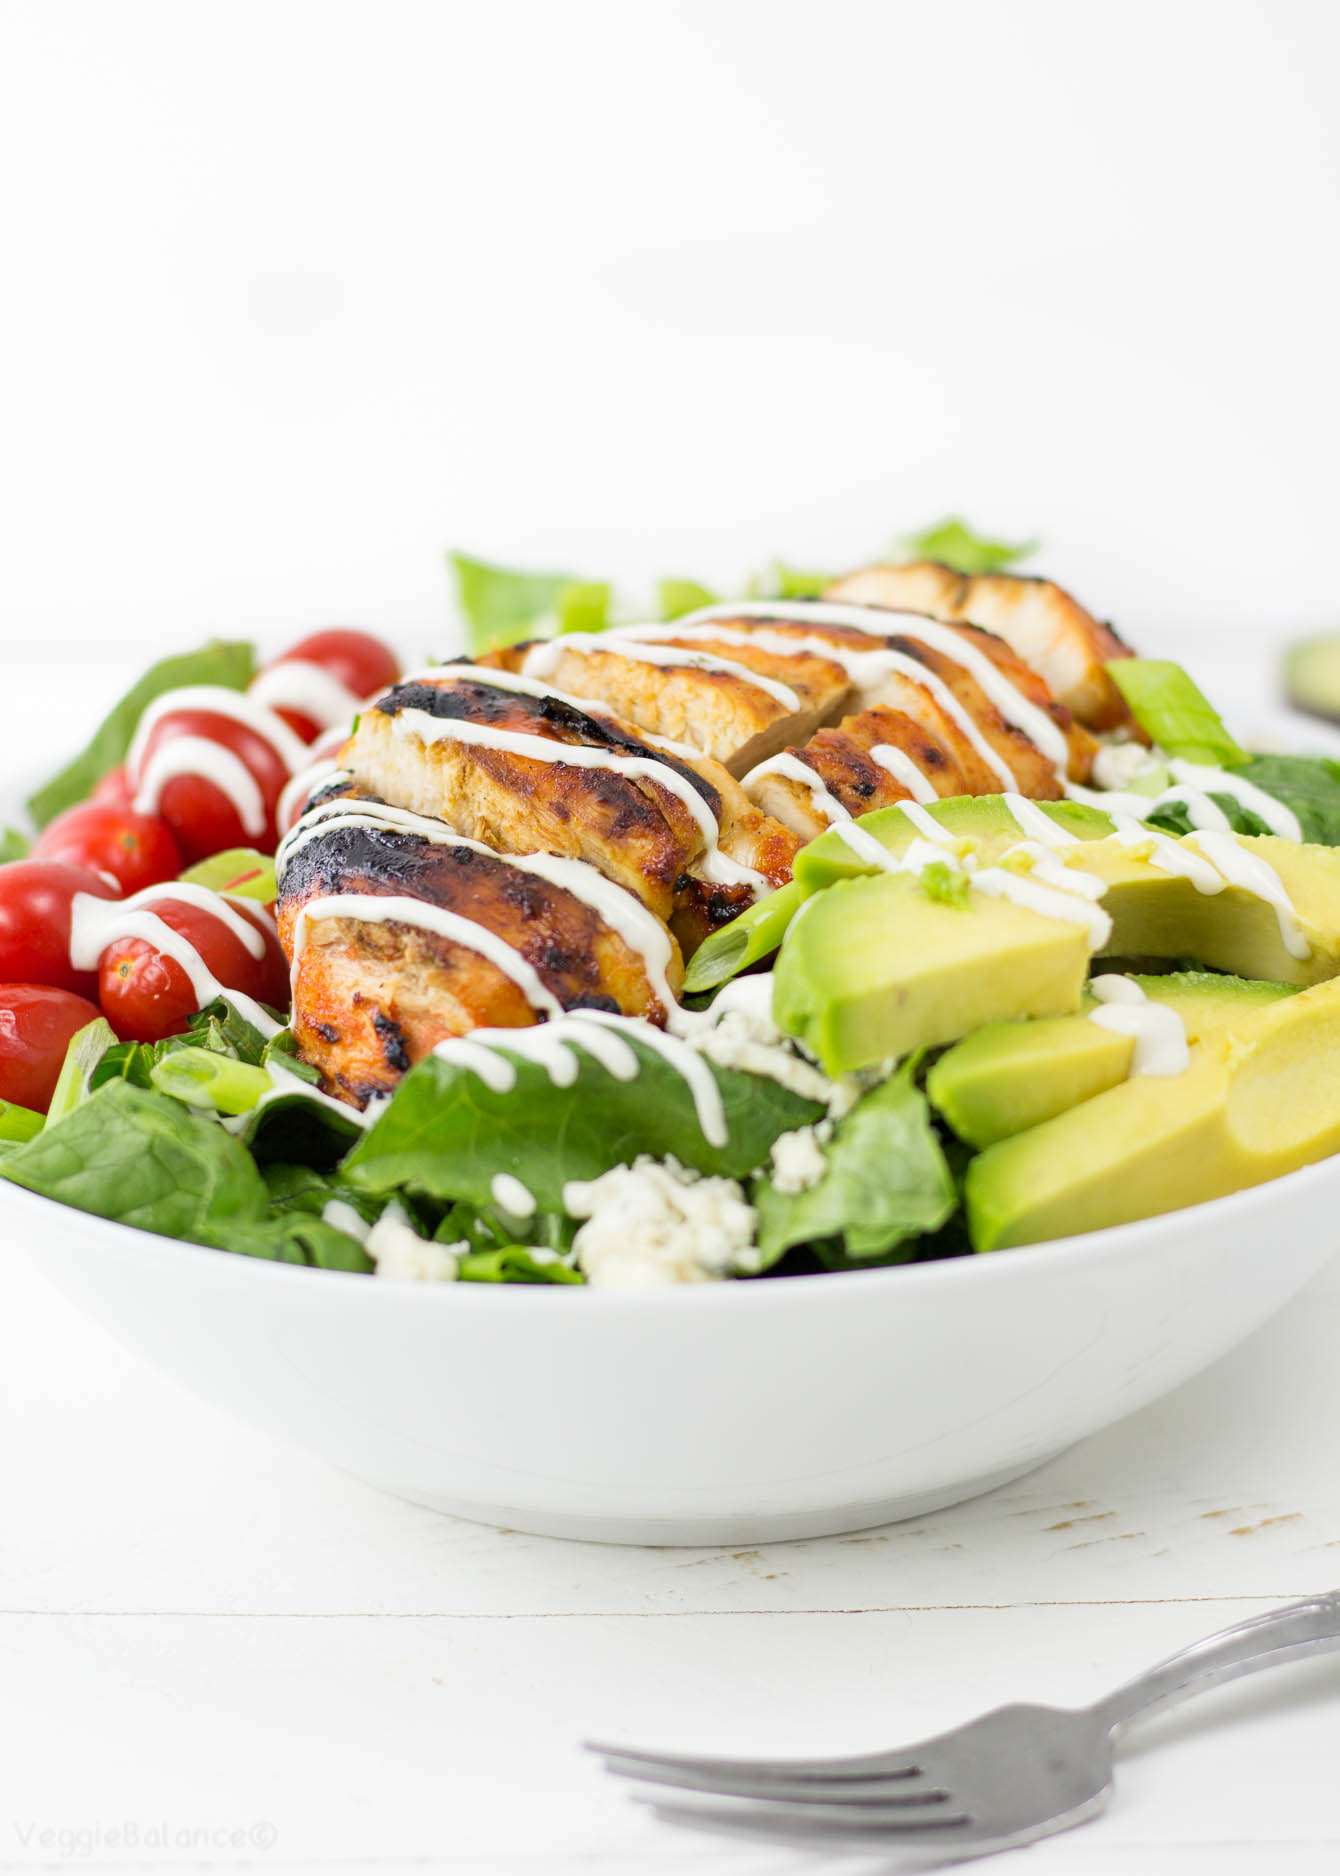 Grilled Buffalo Chicken Salad recipe - Veggiebalance.com